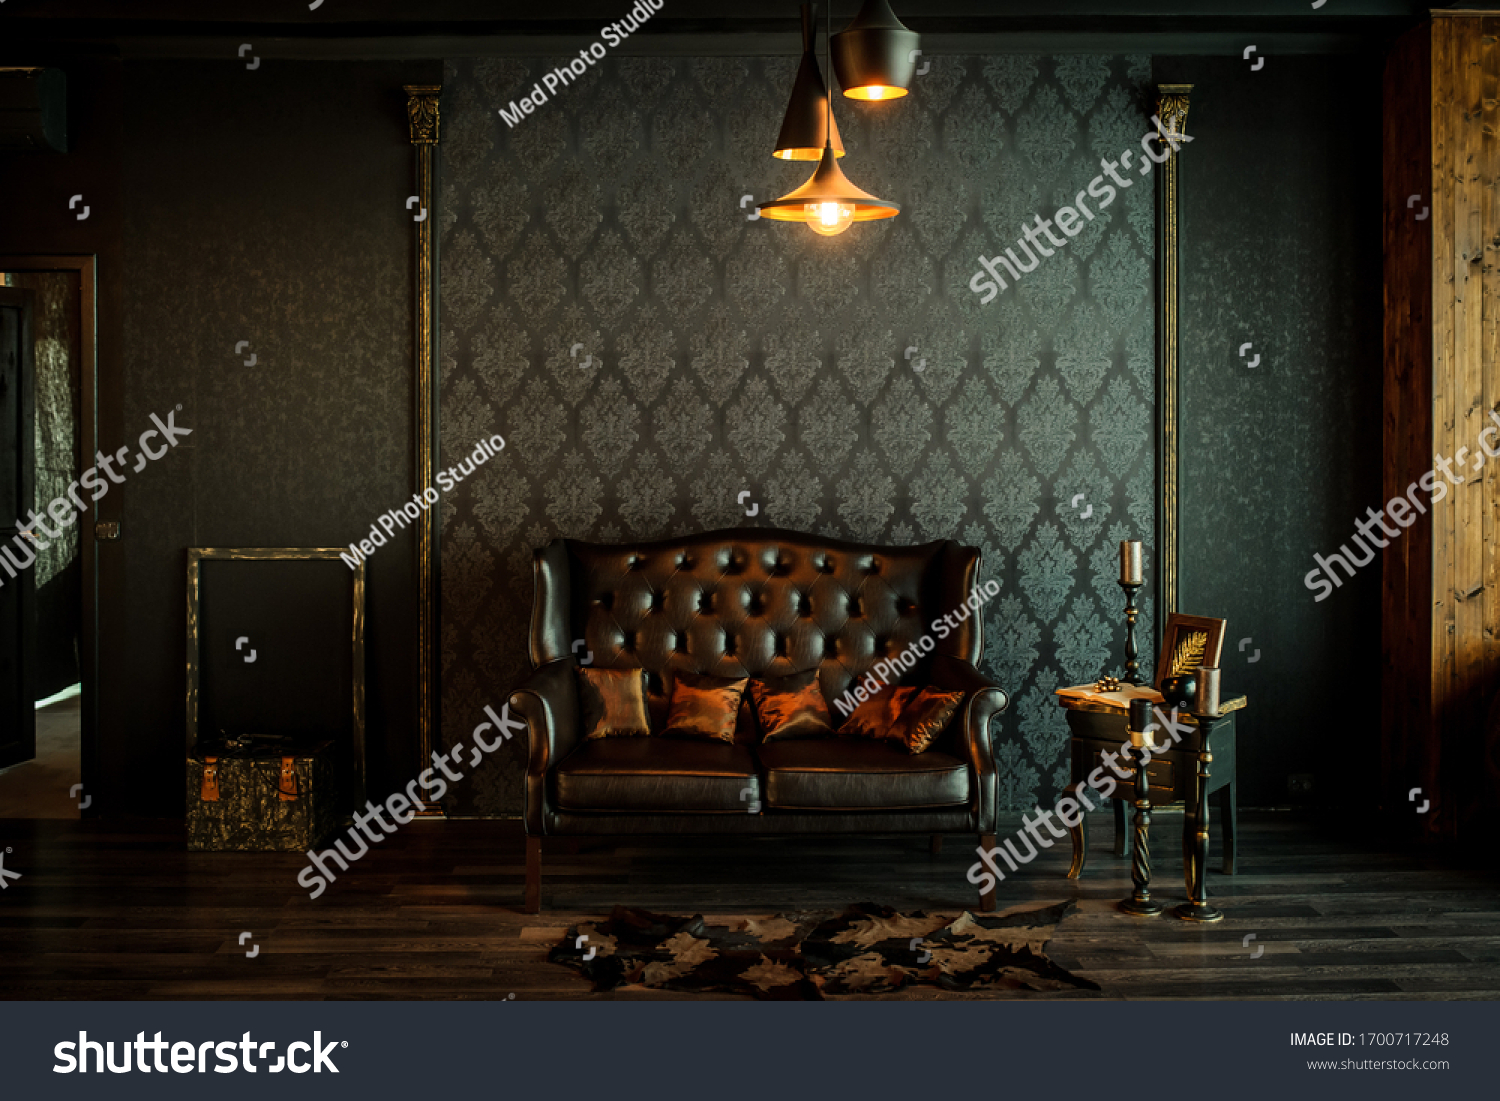 Old vintage interior with leather sofa, wood table and ceiling light. #1700717248